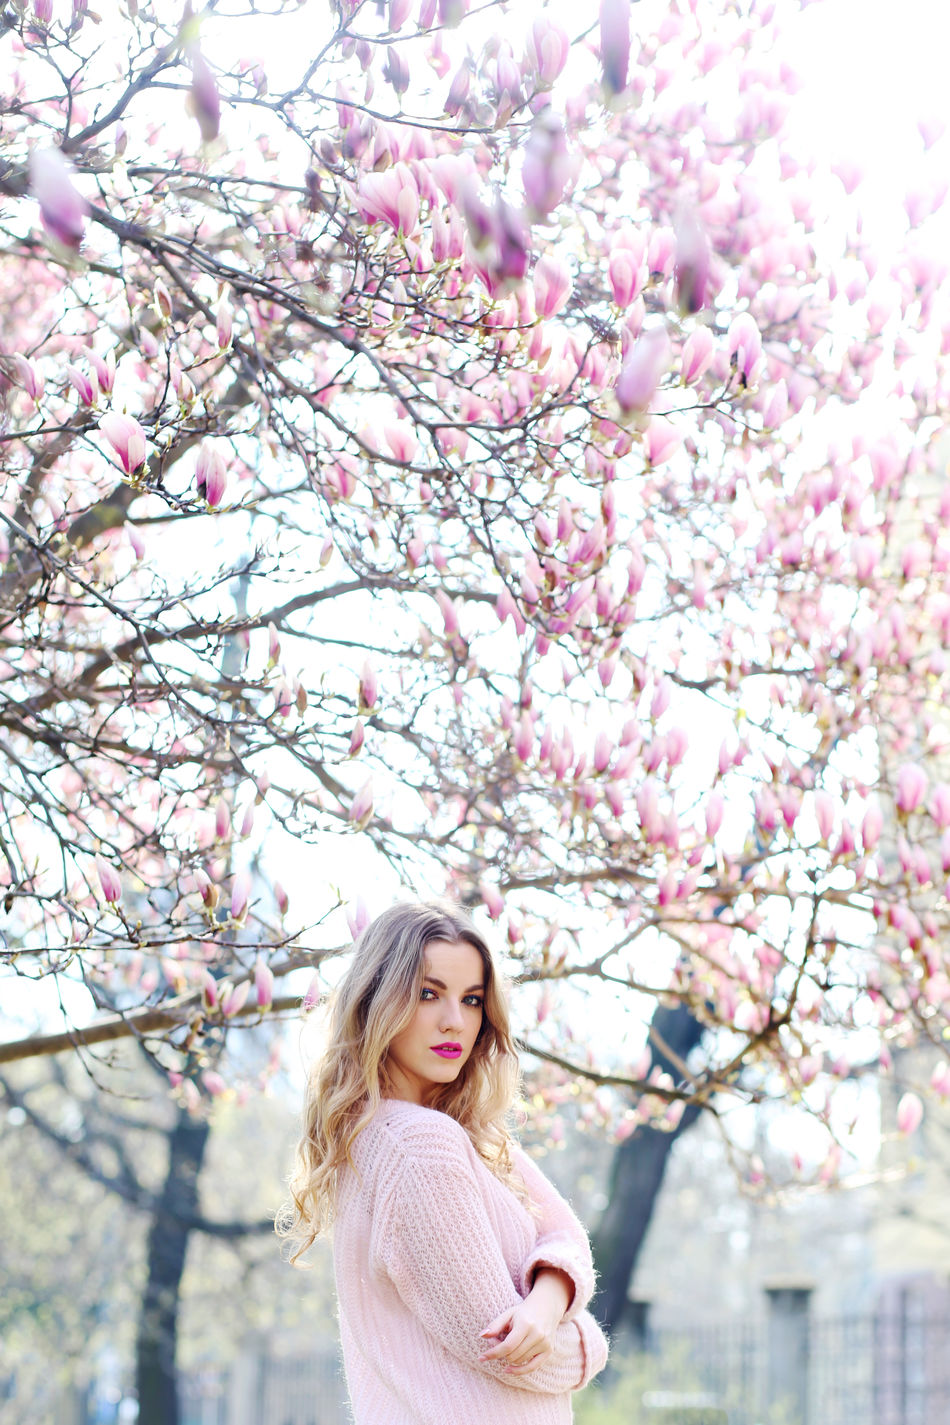 Beautiful Woman Beauty Beauty In Nature Blossom Flower Long Hair Magnolia Millennial Pink One Woman Only Pink Color Portrait Slovakiagirl Smiling Springtime Tree Women Young Adult Young Women